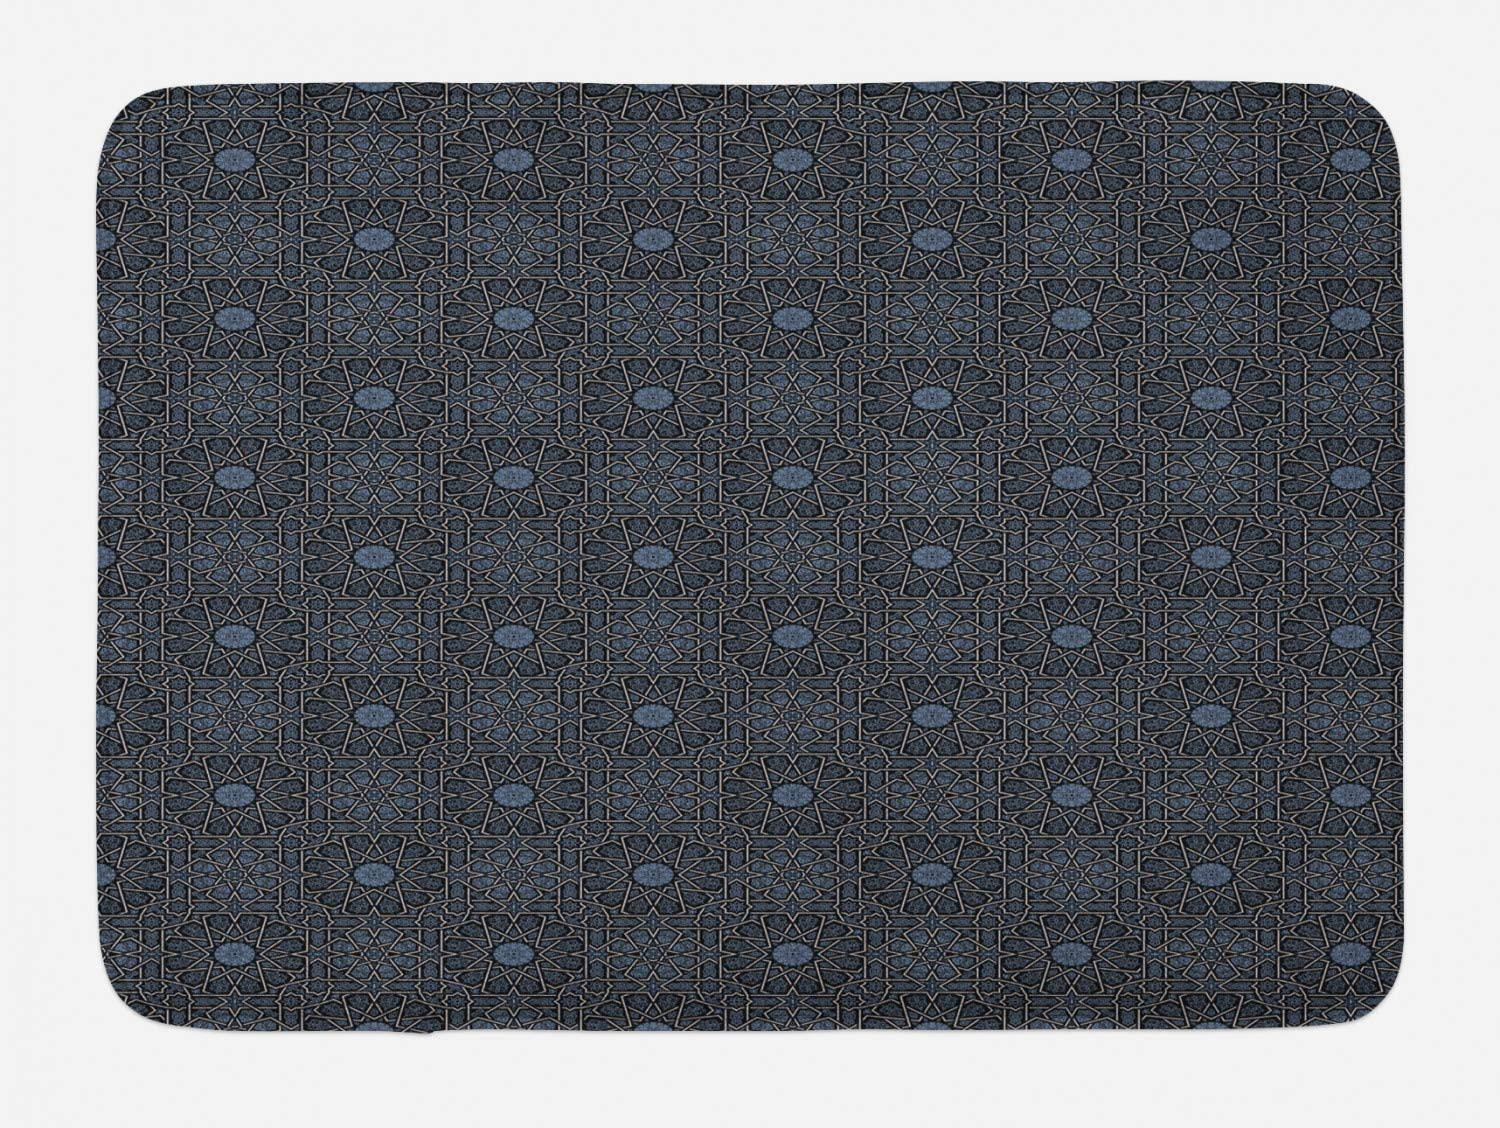 Ambesonne Moroccan Bath Mat, Geometric Design with Old Rich Royal Elements and Moroccan Star Dark, Plush Bathroom Decor Mat with Non Slip Backing, 29.5